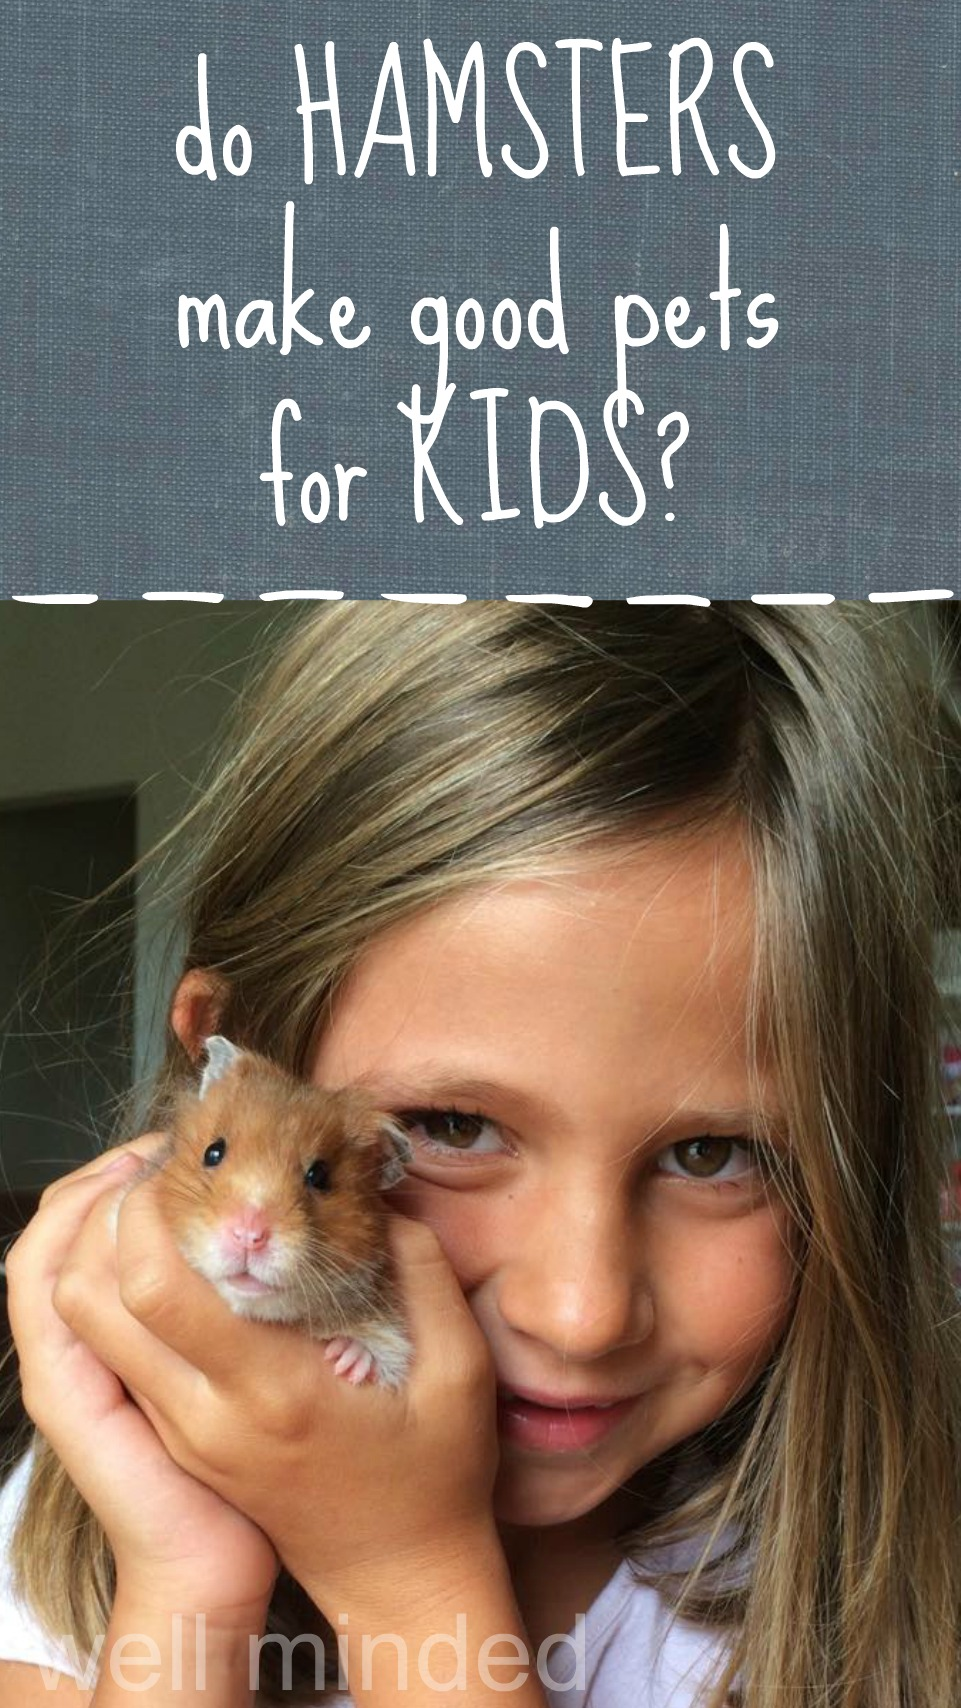 Do hamsters make good pets for kids?